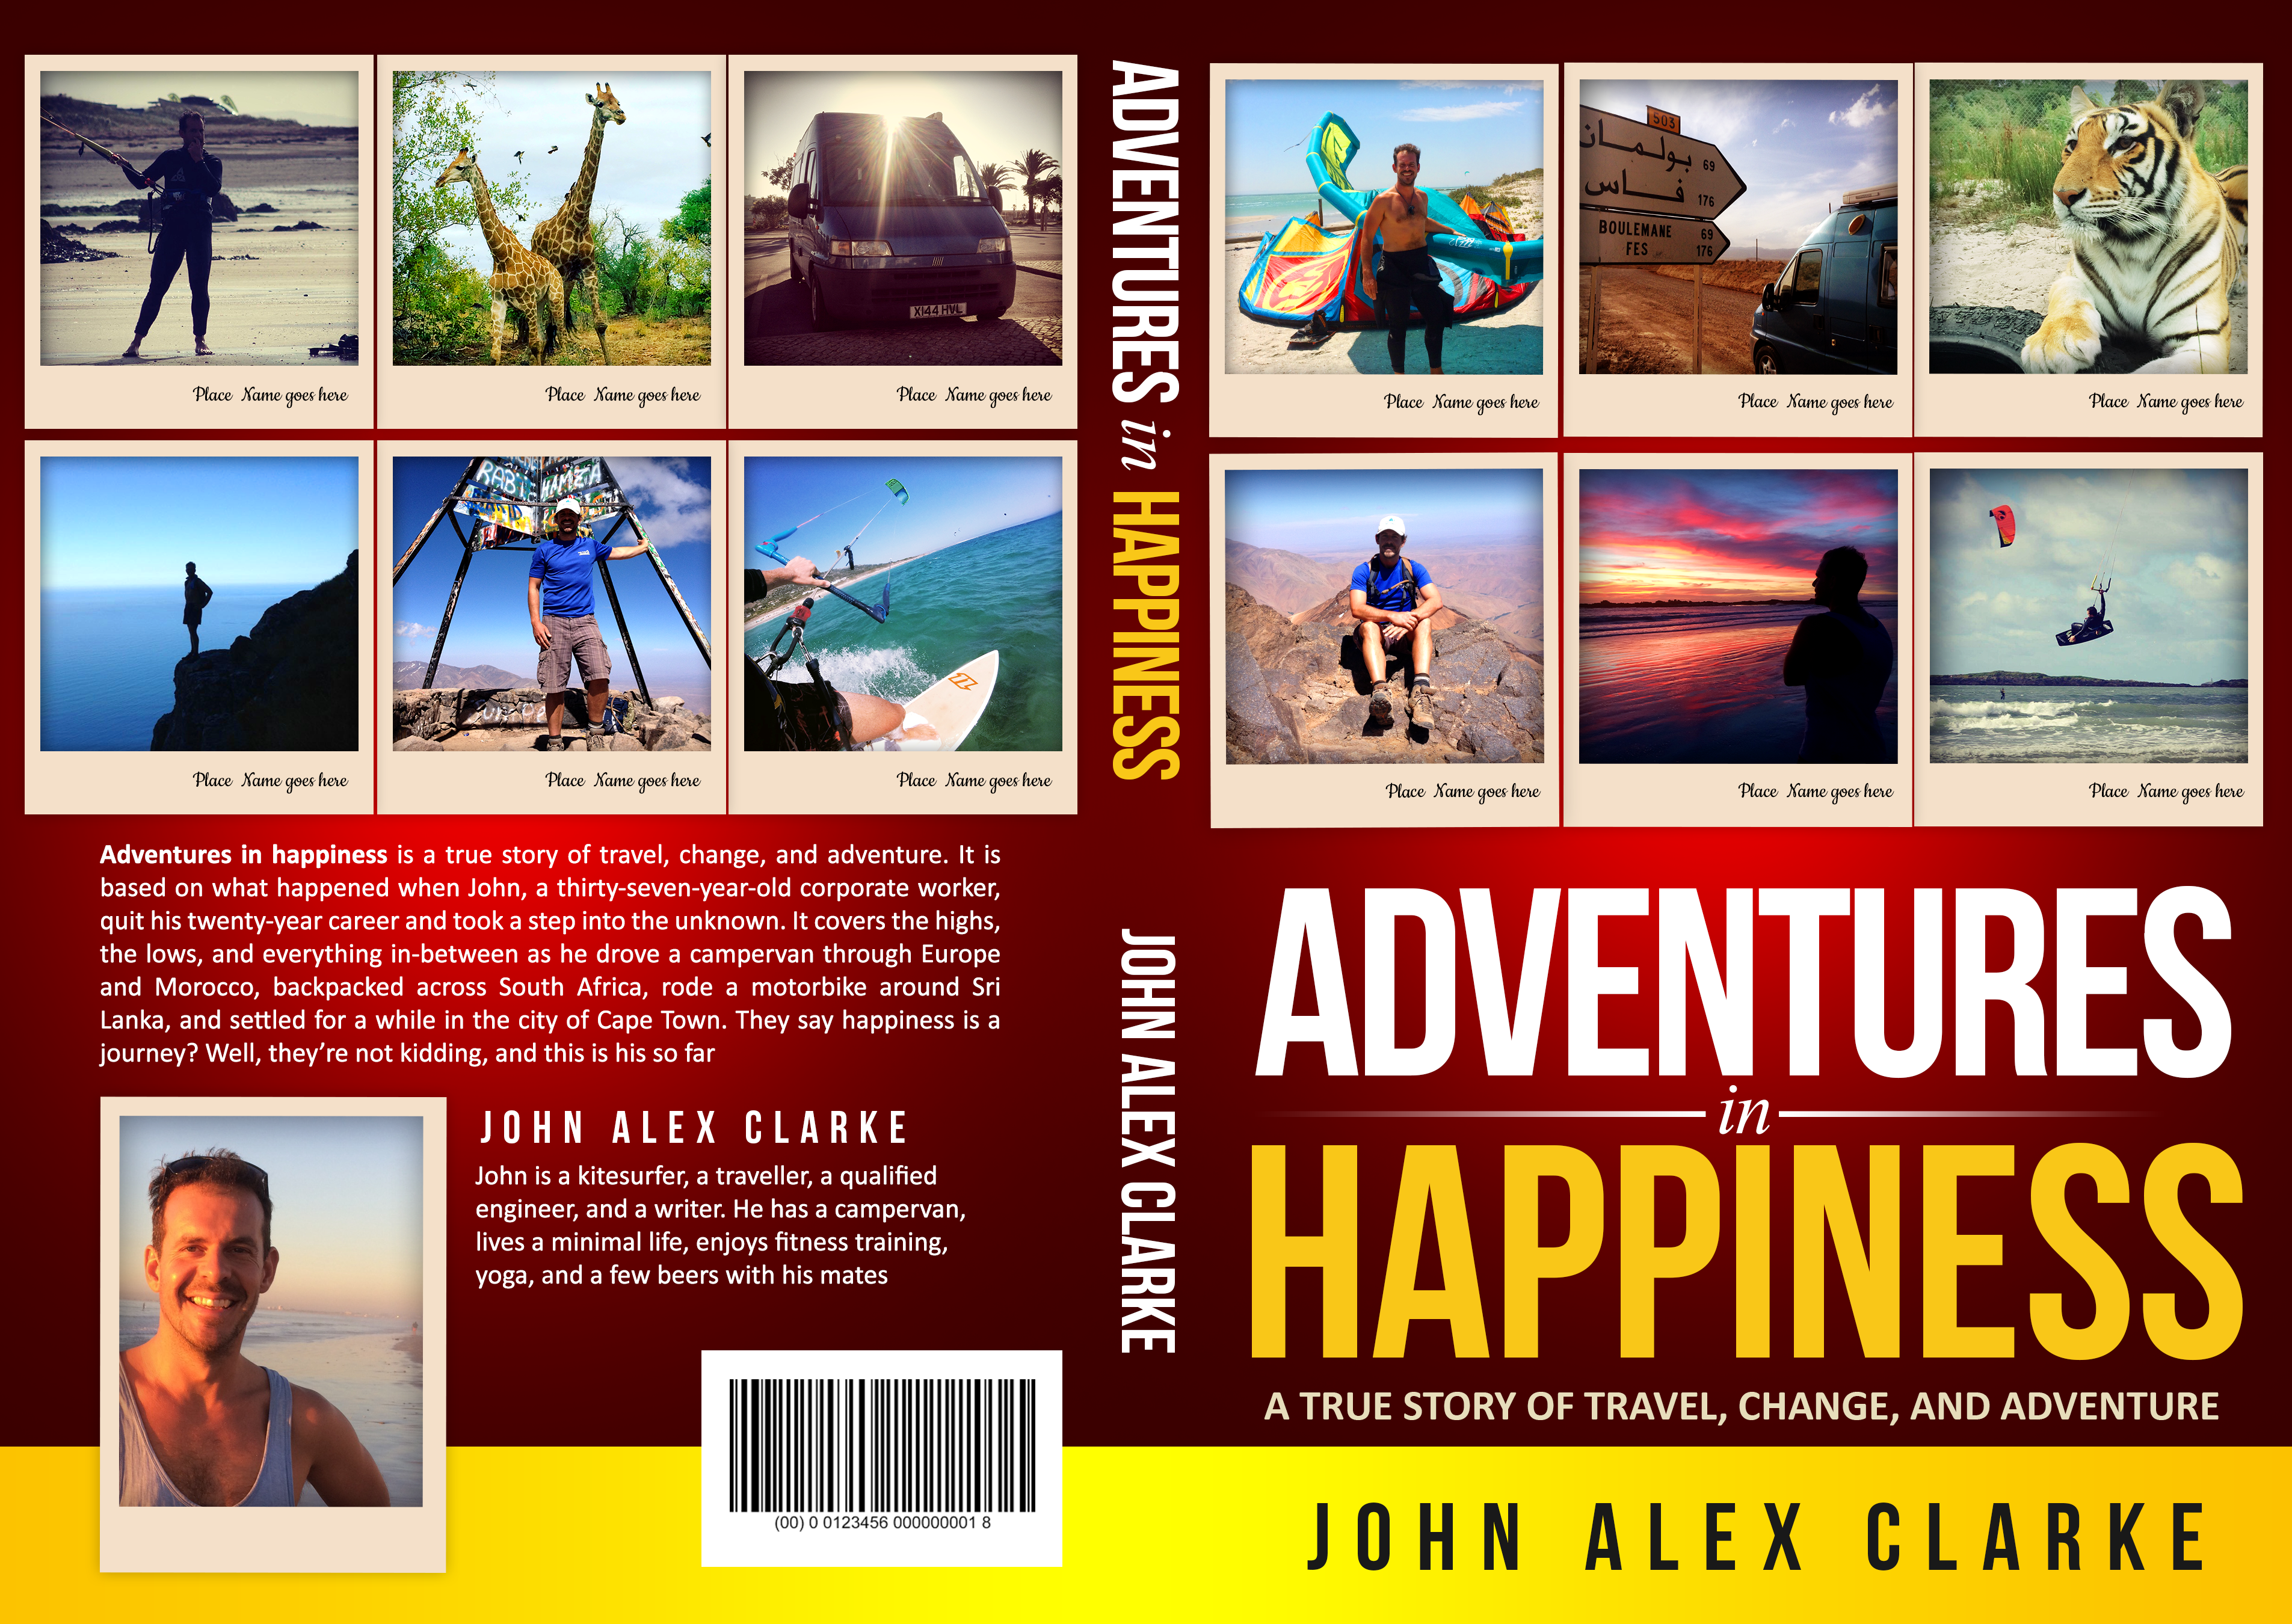 True story of change, travel, and adventure needs a confident cover.